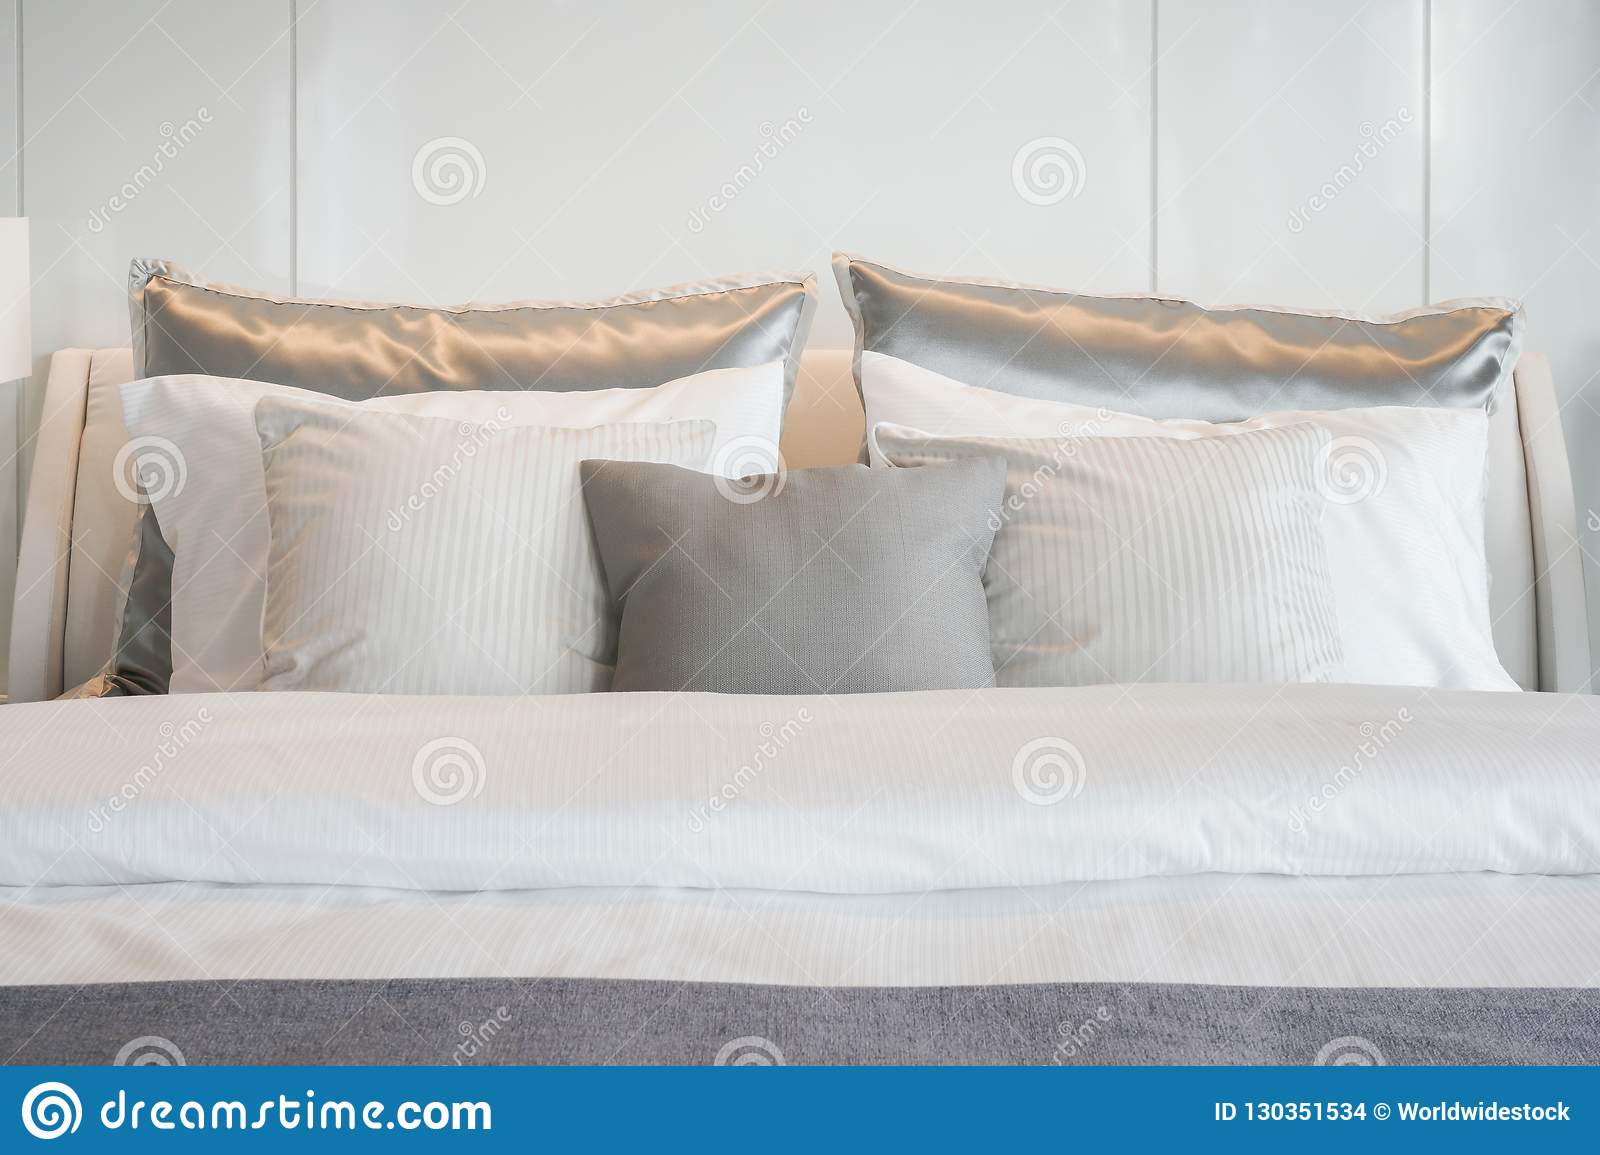 Gray Color Scheme Pillows Setting On Bed With Satin Finished Bedding Stock Photo Image Of Interior Mattress 130351534